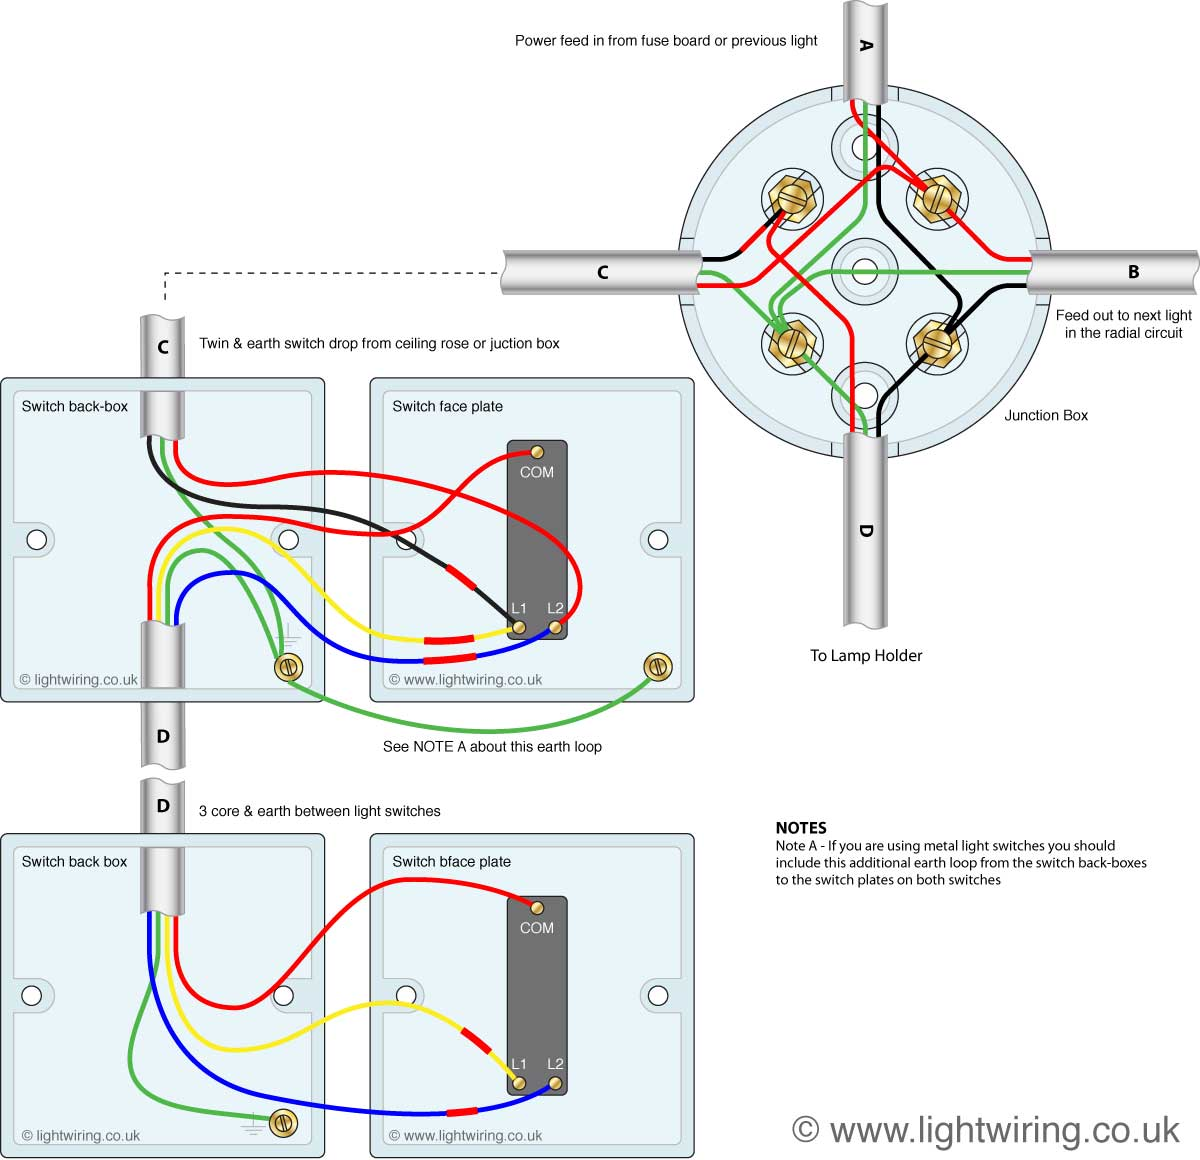 Diagram Lighting Circuit Wiring Diagram Uk Full Version Hd Quality Diagram Uk Diagrammasas Sanitacalabria It